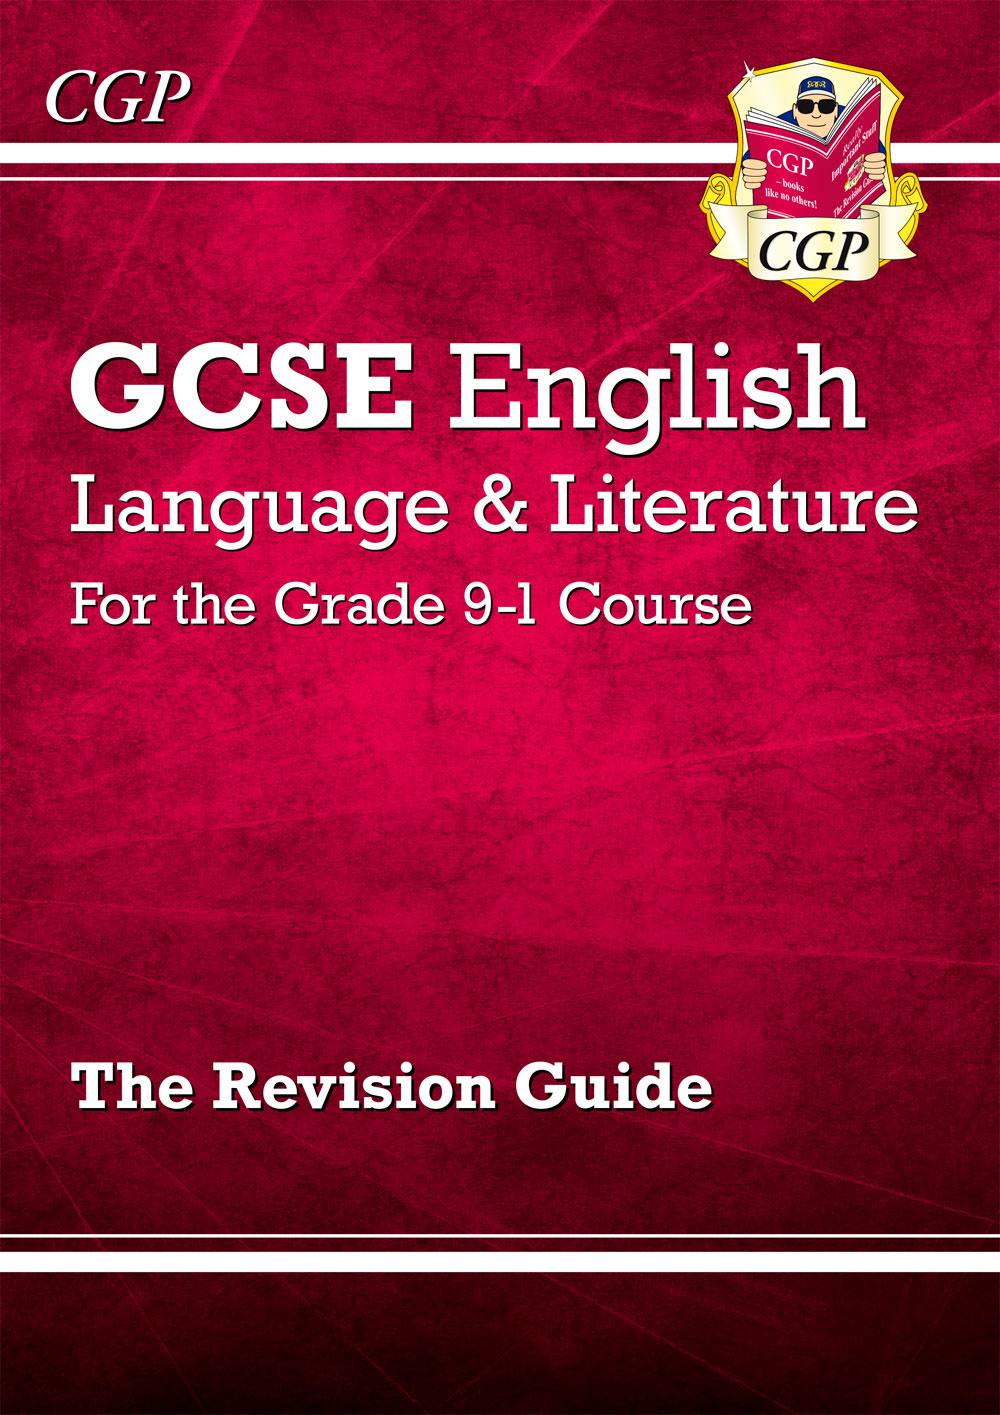 EHR41 - GCSE English Language and Literature Revision Guide - for the Grade 9-1 Courses